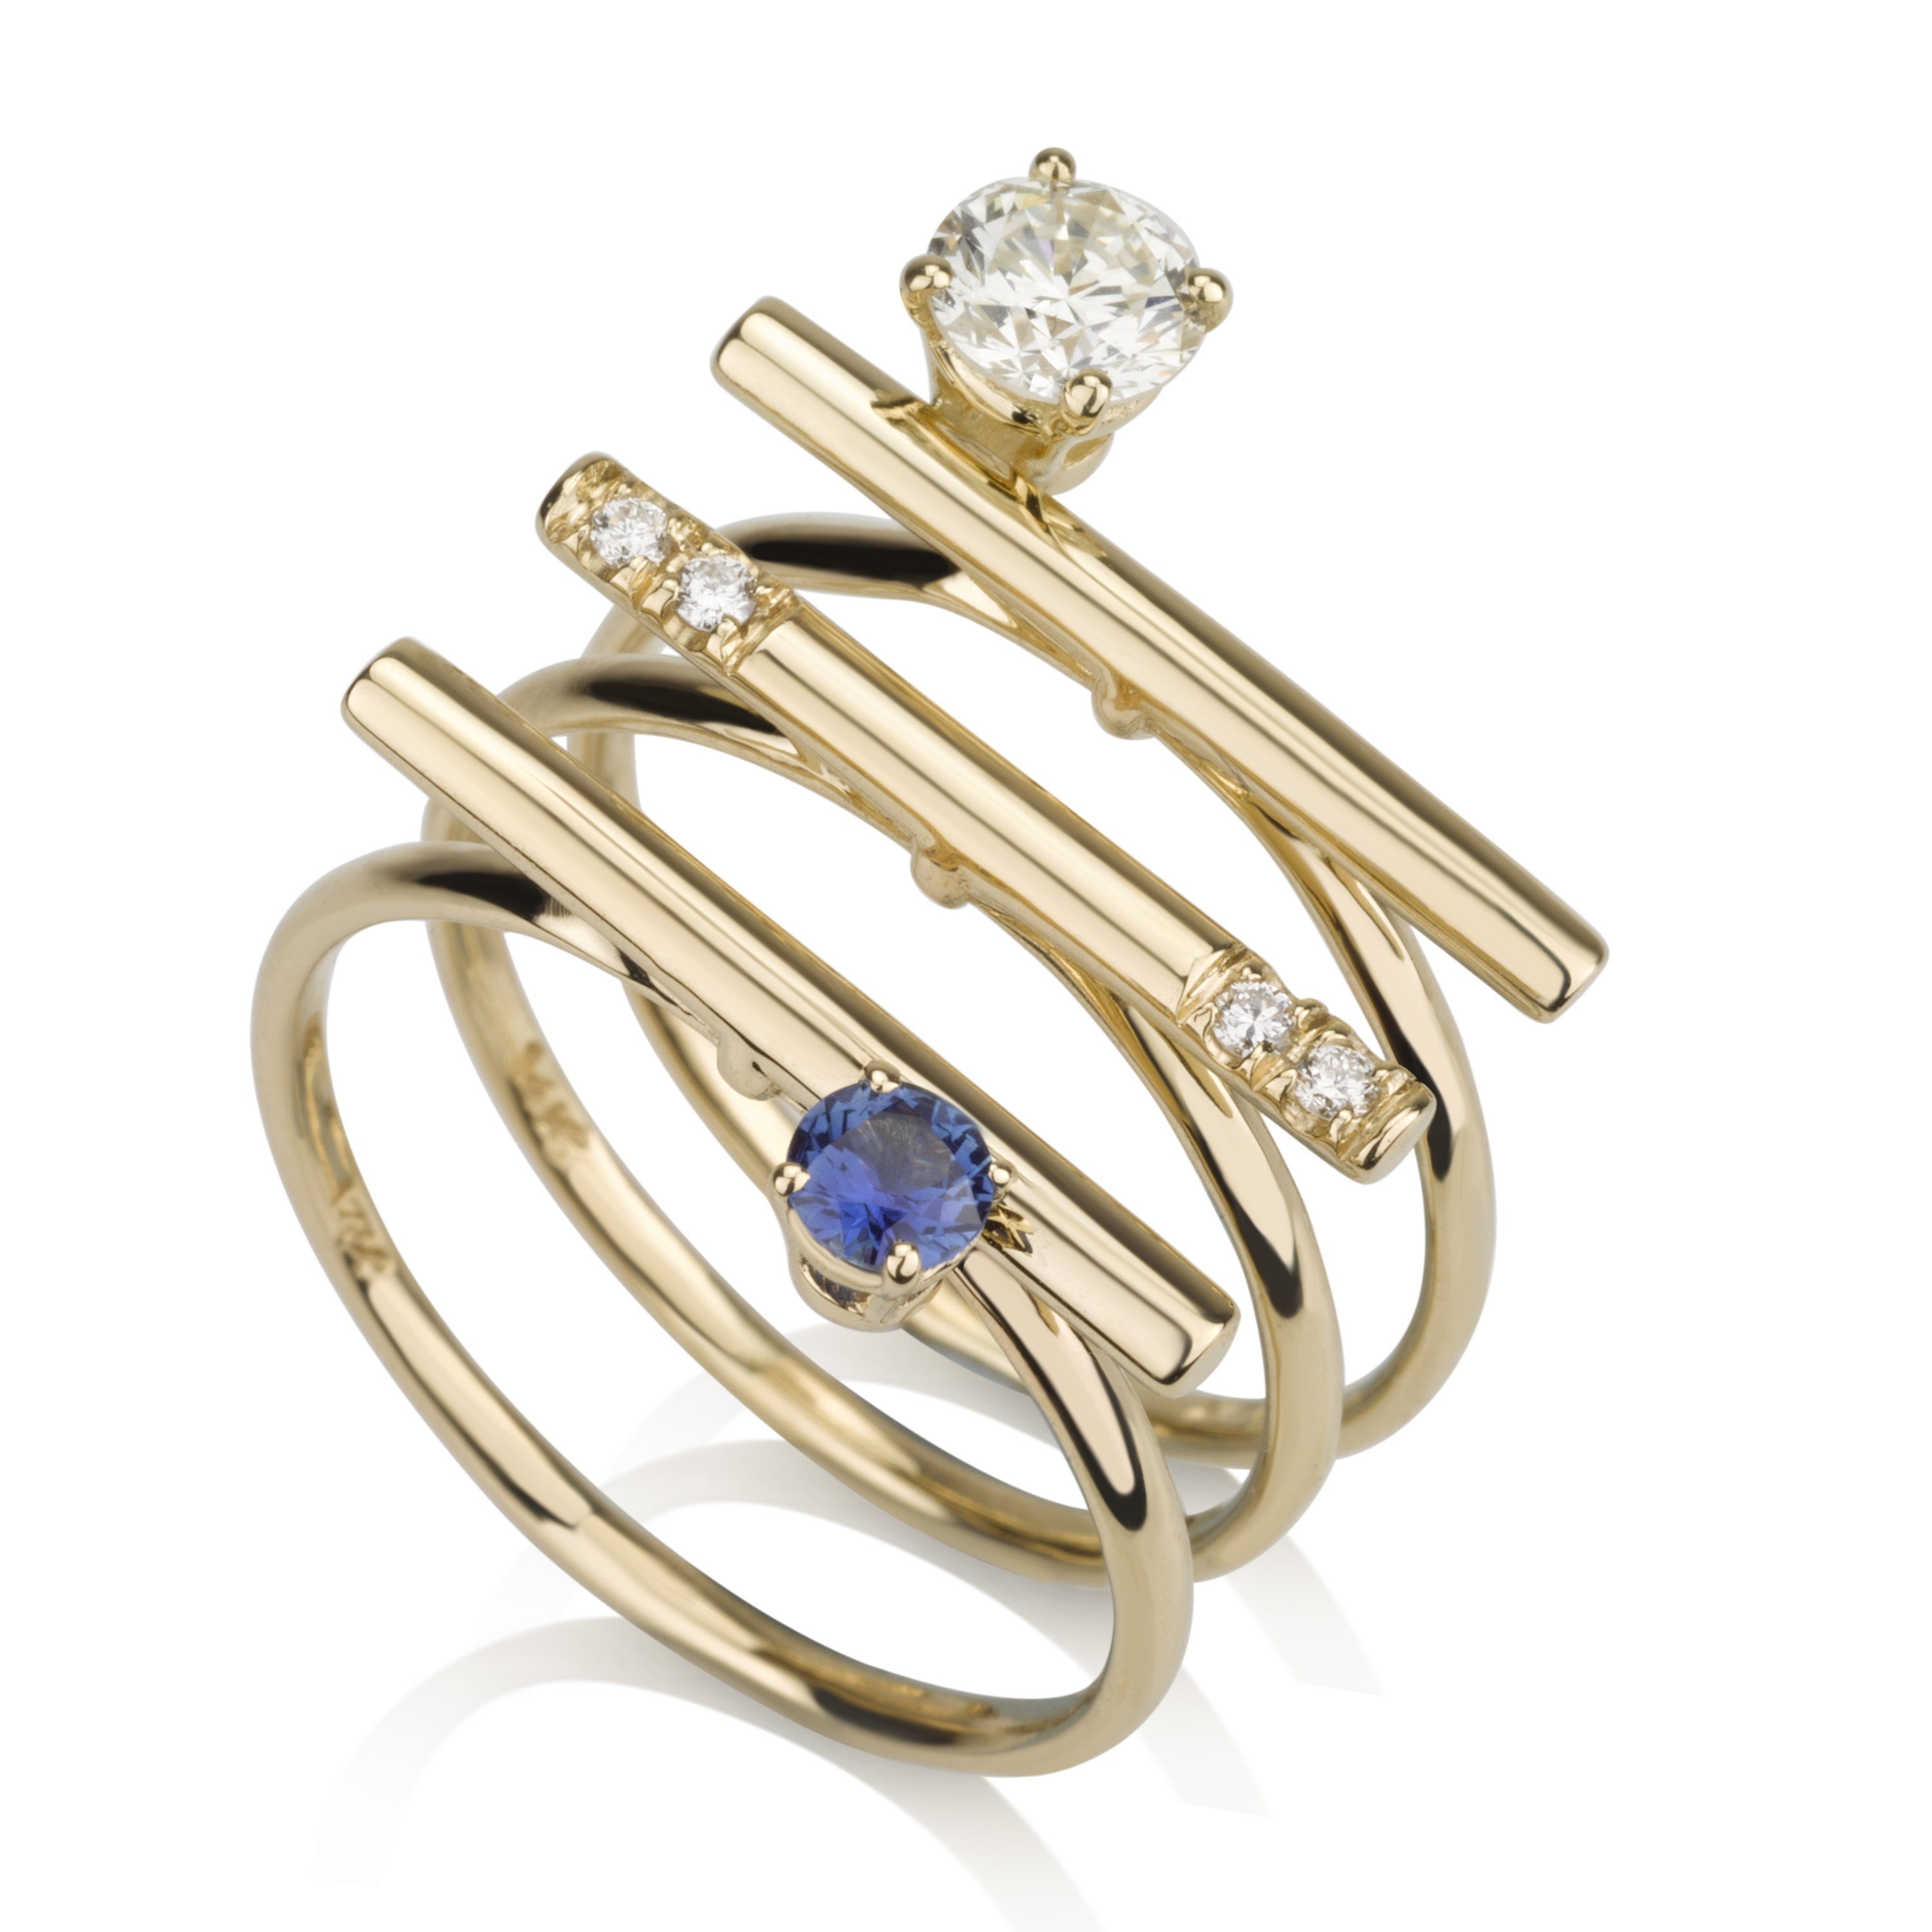 Three Lines Rings Set - Diamonds & Sapphire